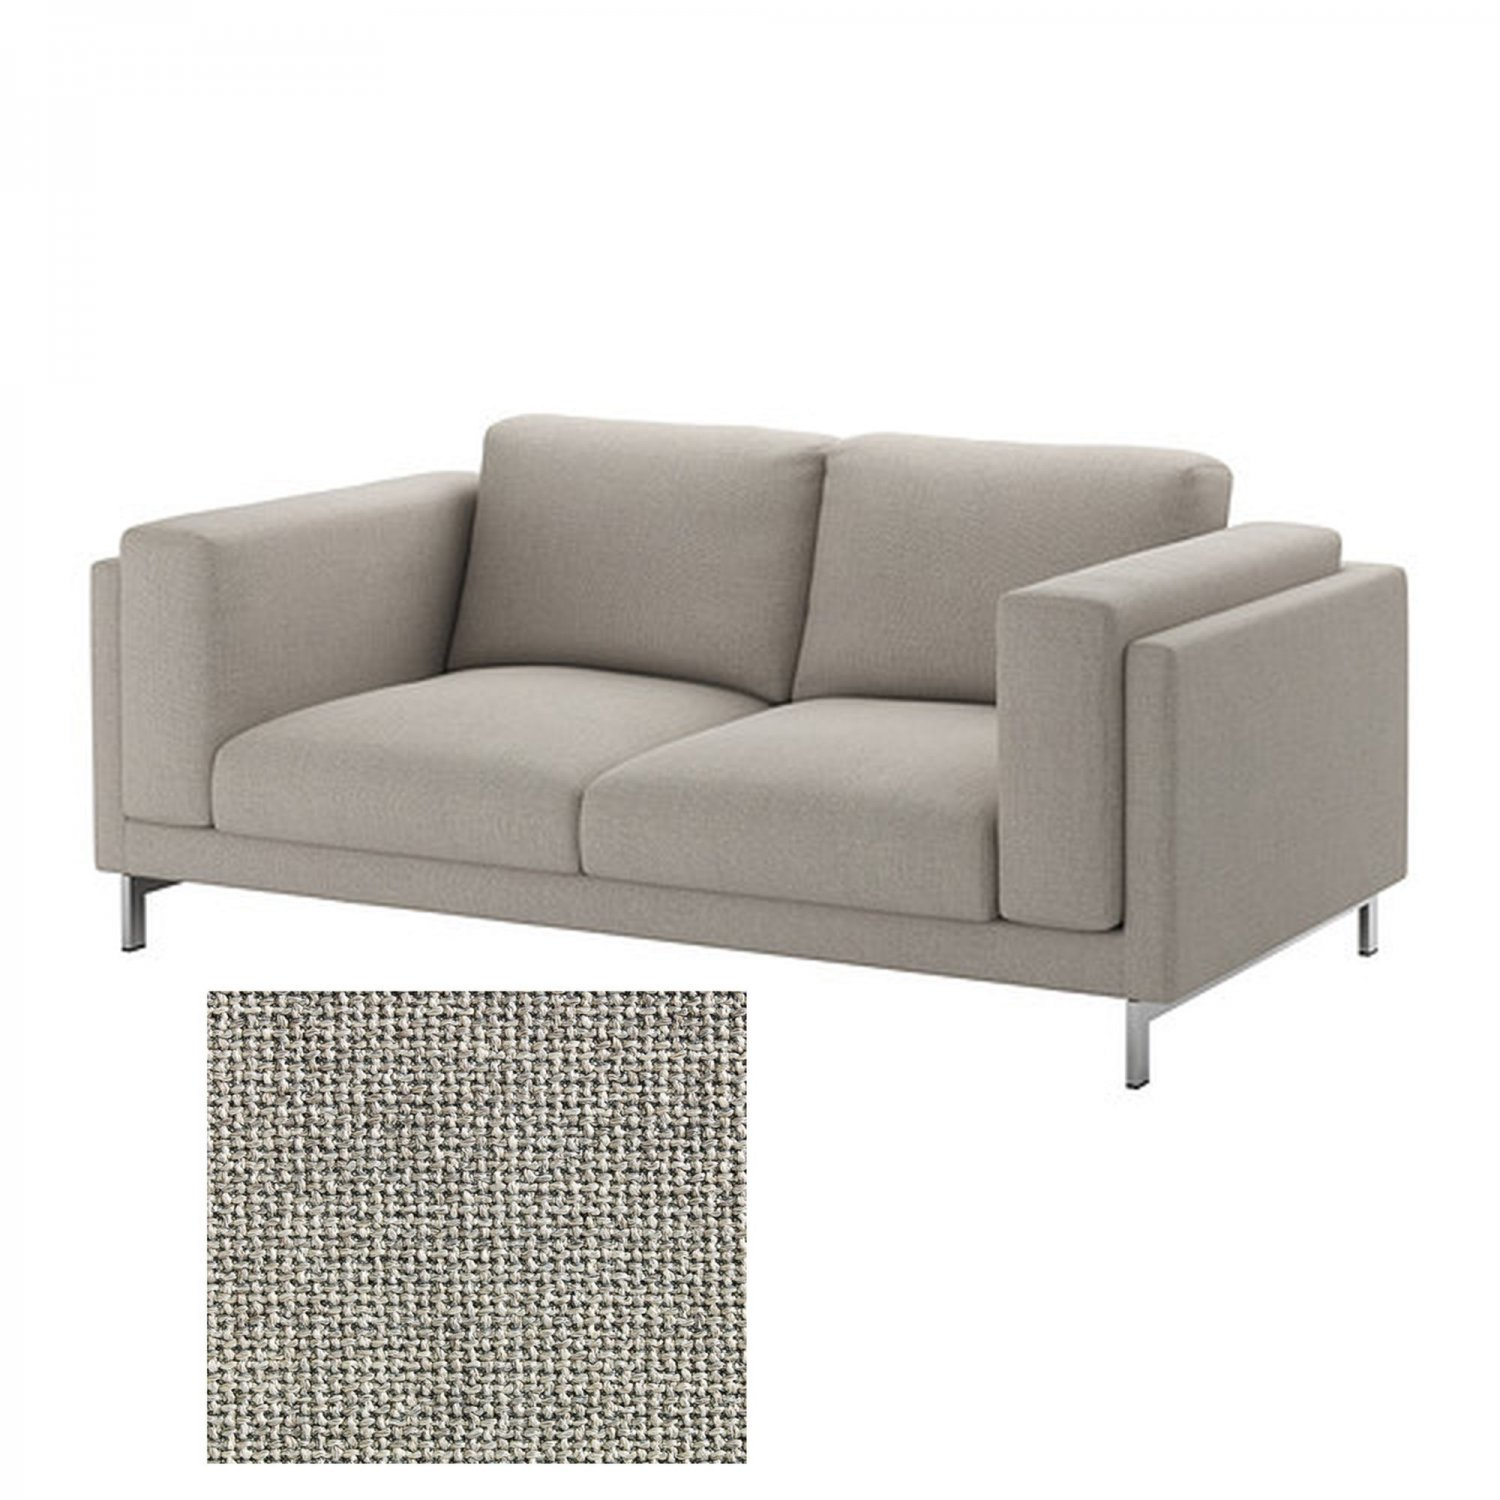 bed kivik slipcover covers ikea sofa ashley loveseat bath and target grey rhmforumbiz couch beyond slipcovers